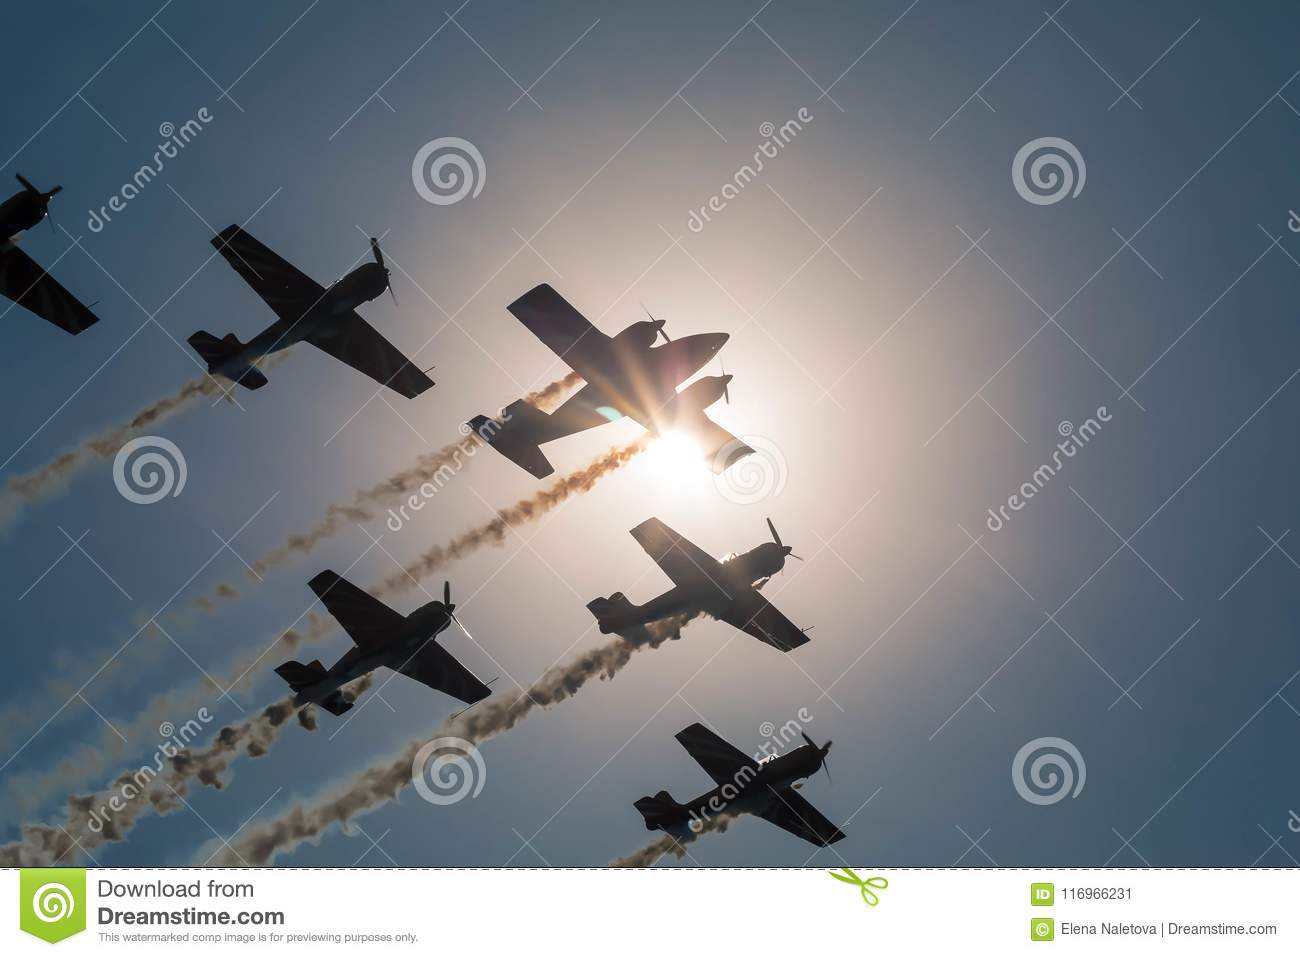 August 19, 2017 Orlovk`s Airfield. Russia, Tver region. Holiday `Day of Aircraft`.